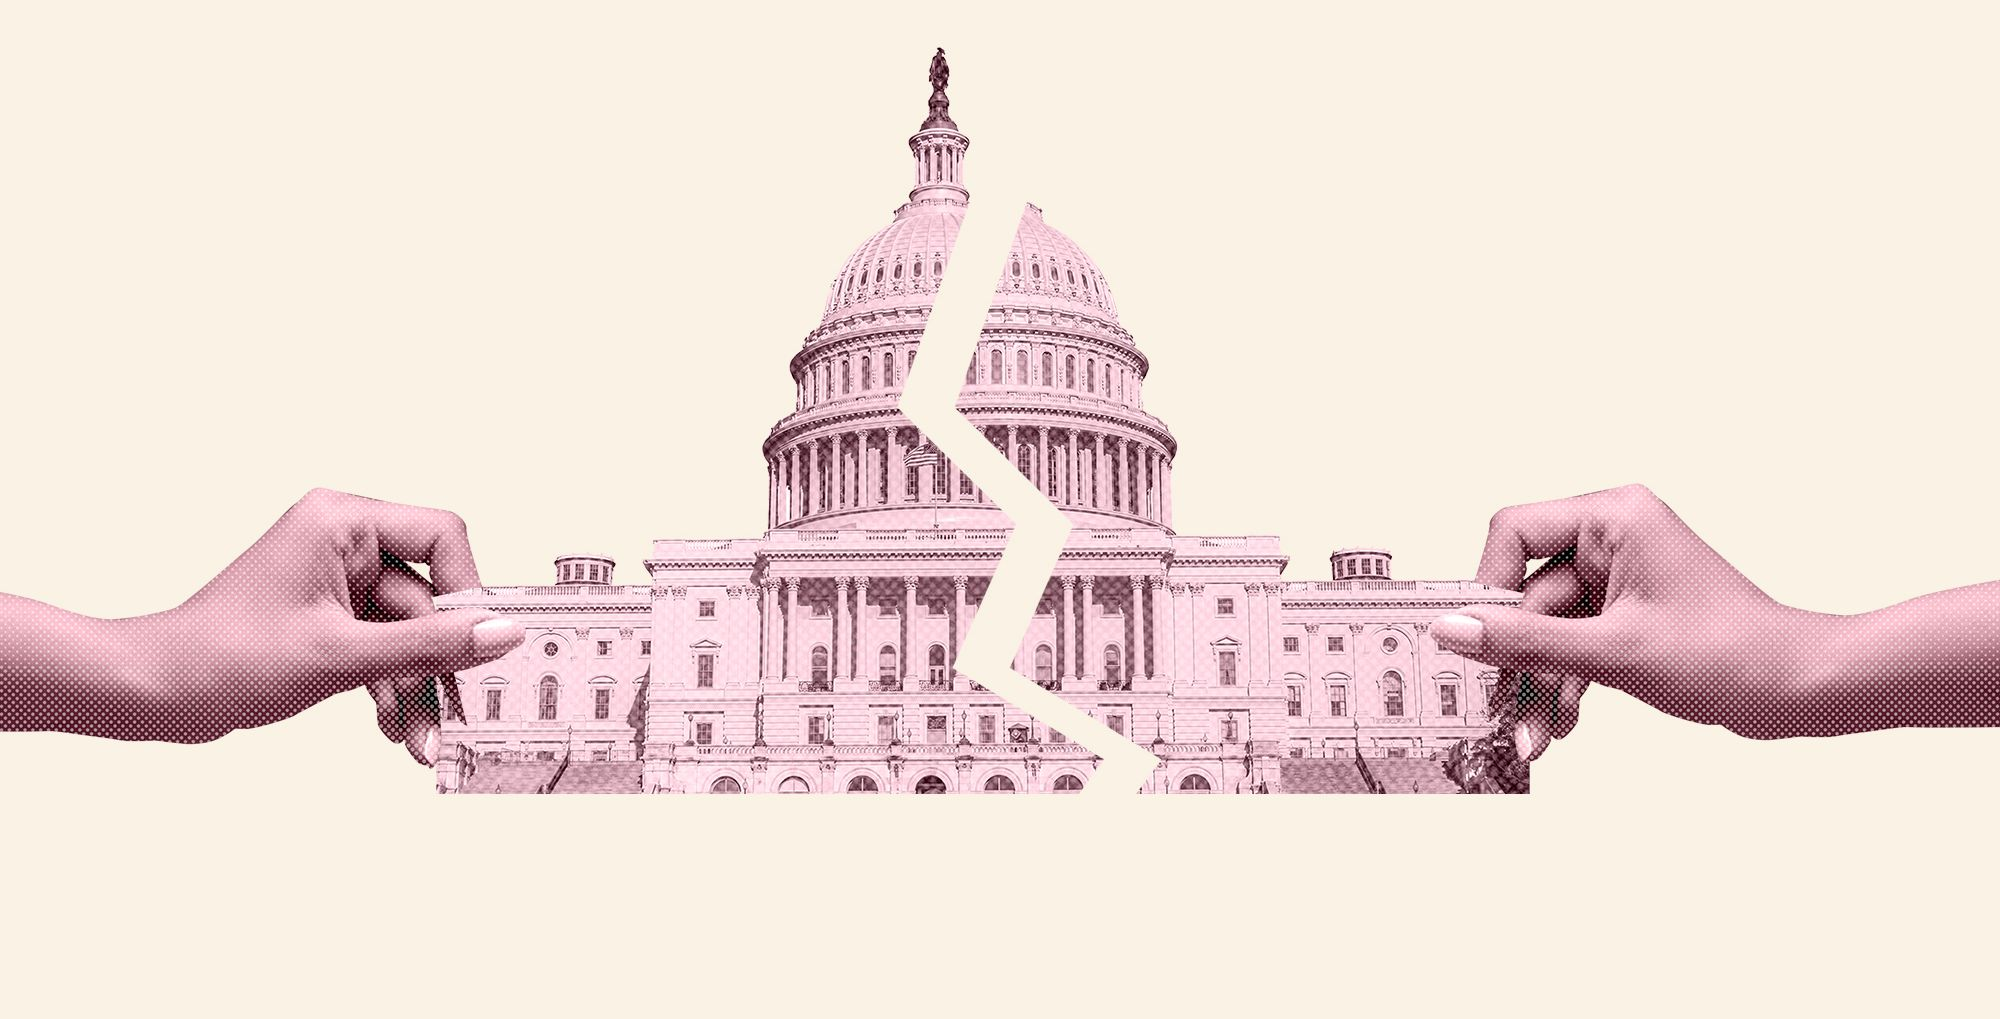 United States Capitol Building Isolated On White